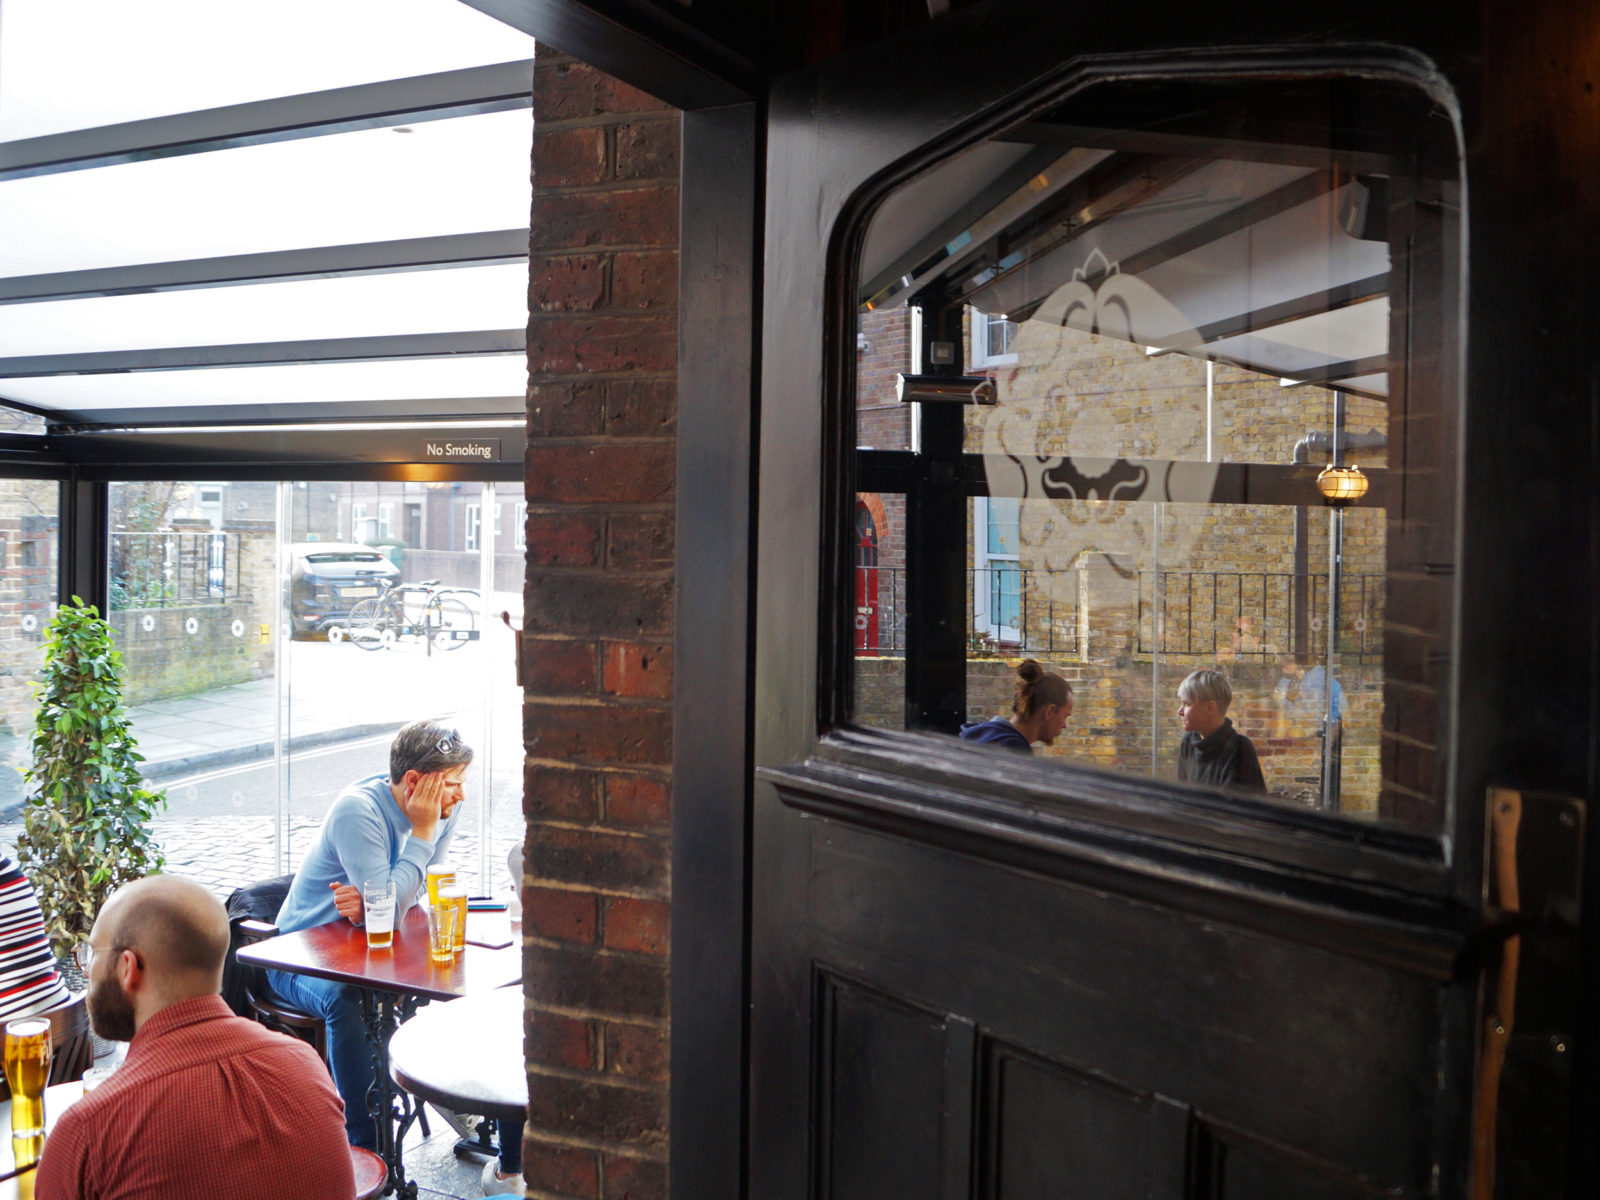 We love our wooden interiors and our glass conservatory. Best of both worlds.